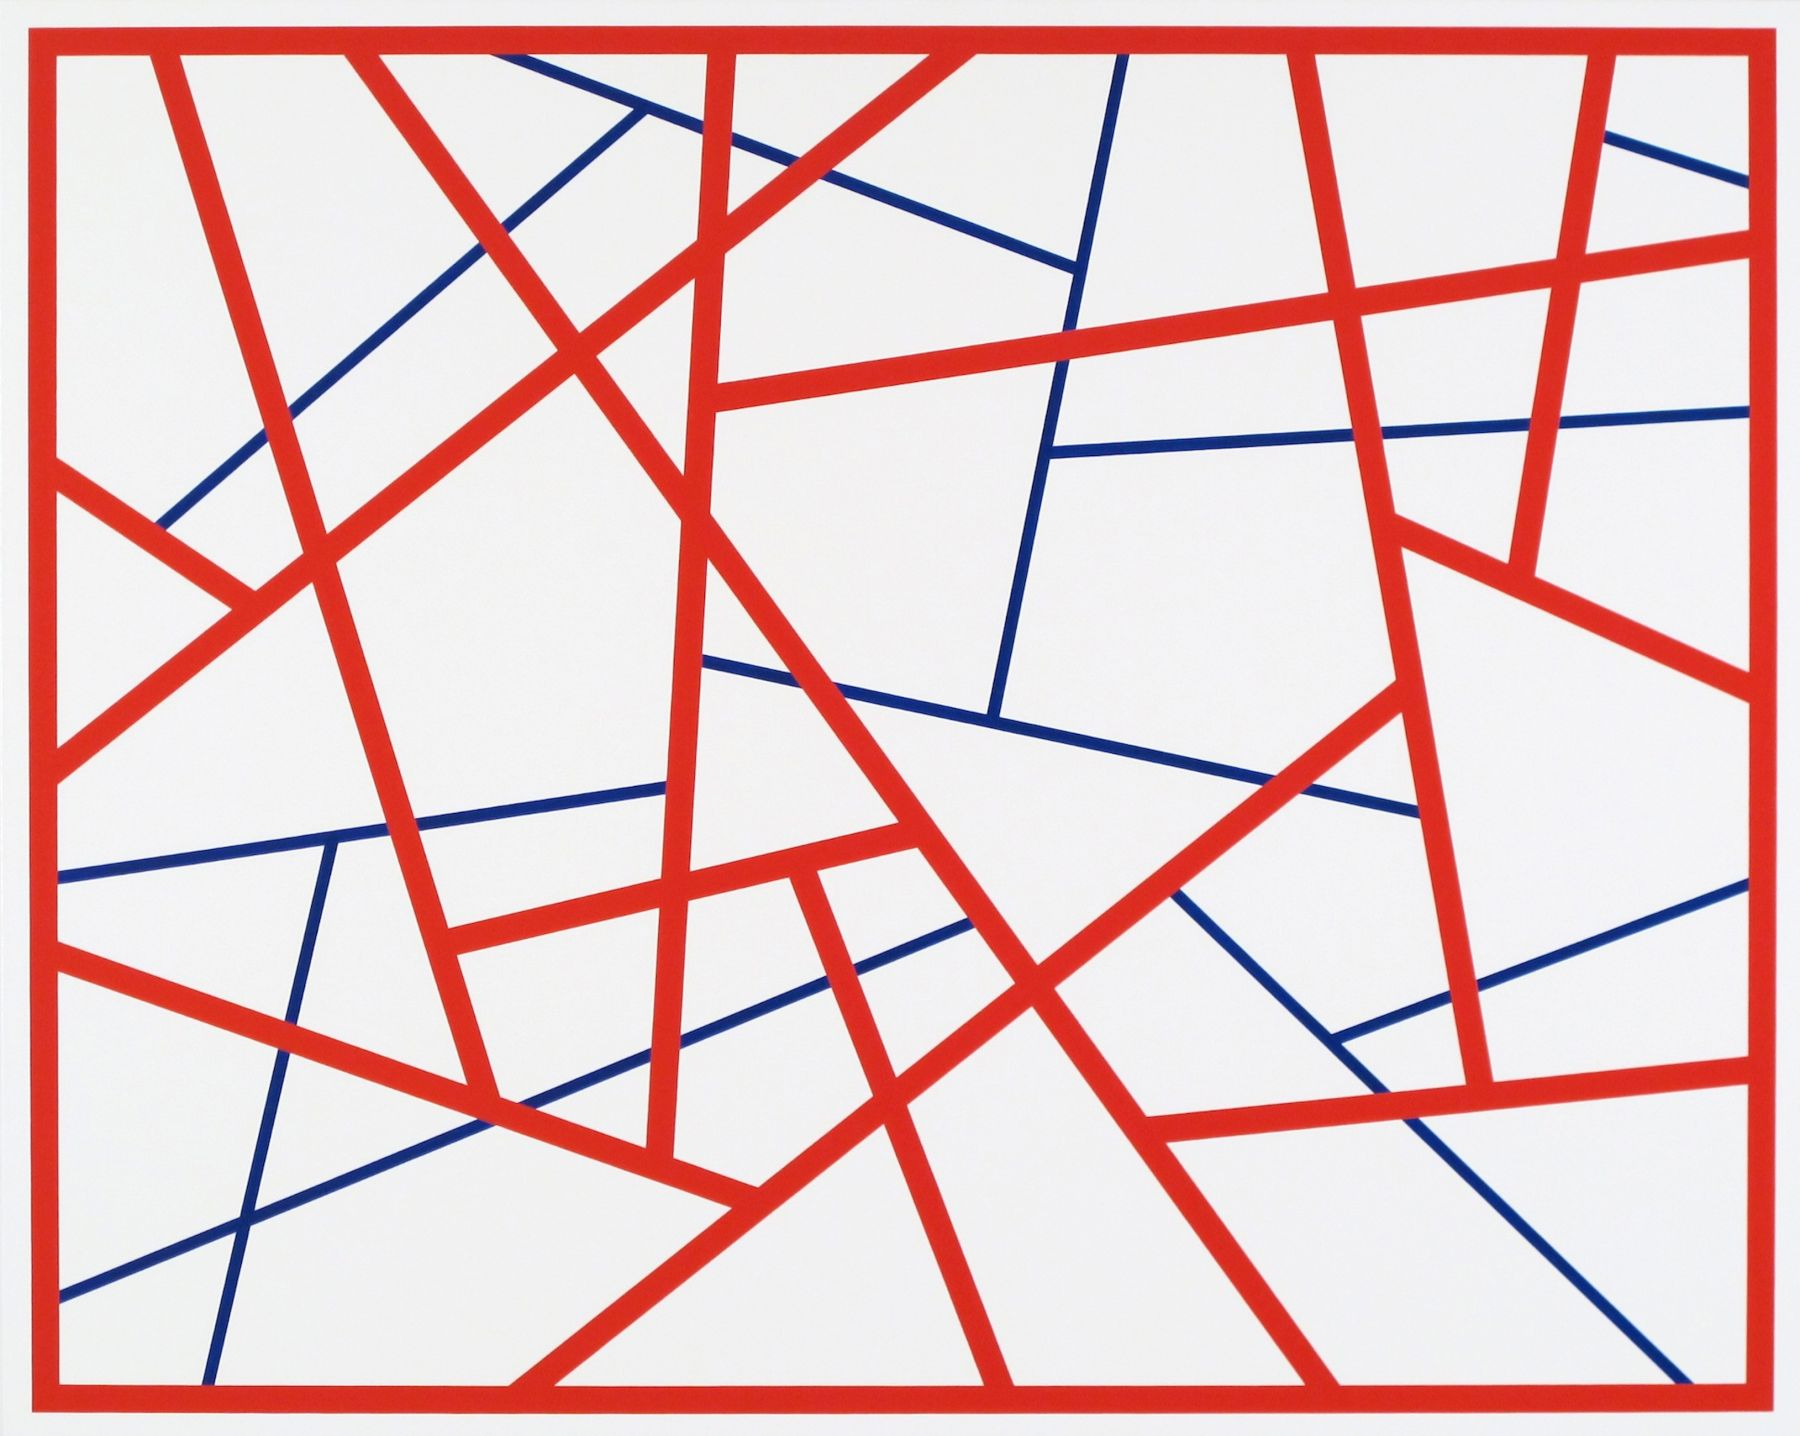 Cary Smith Straight Lines #9 (red-blue), 2014